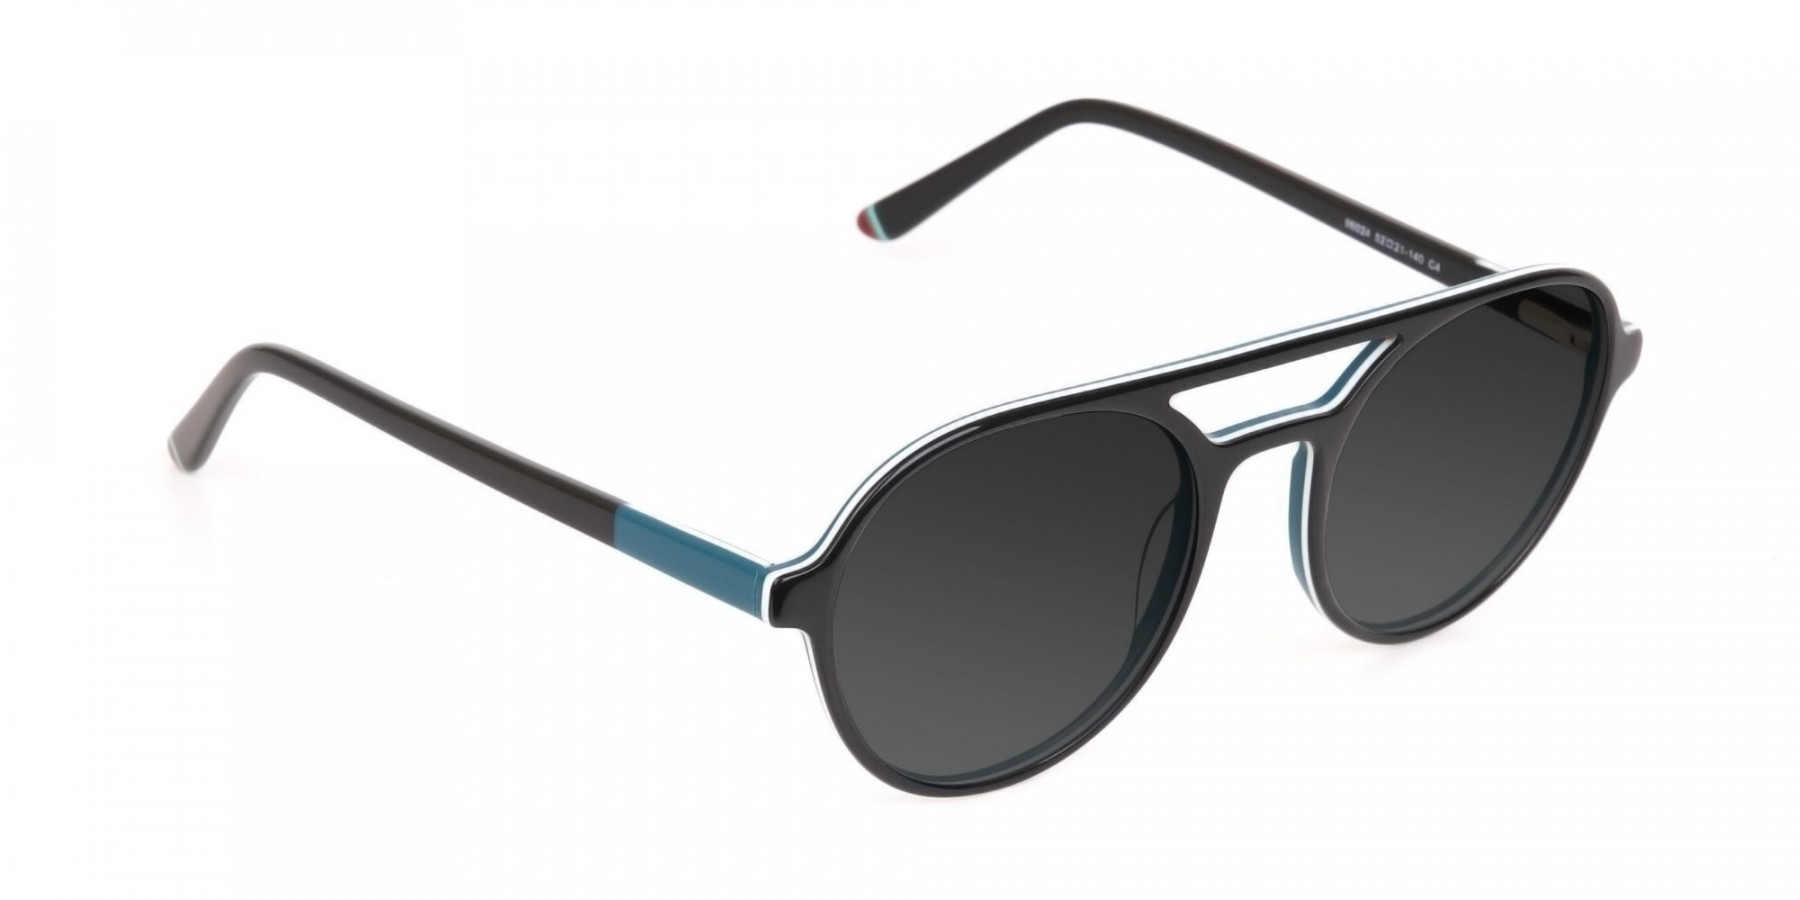 Black and Turquoise Sunglasses - 3